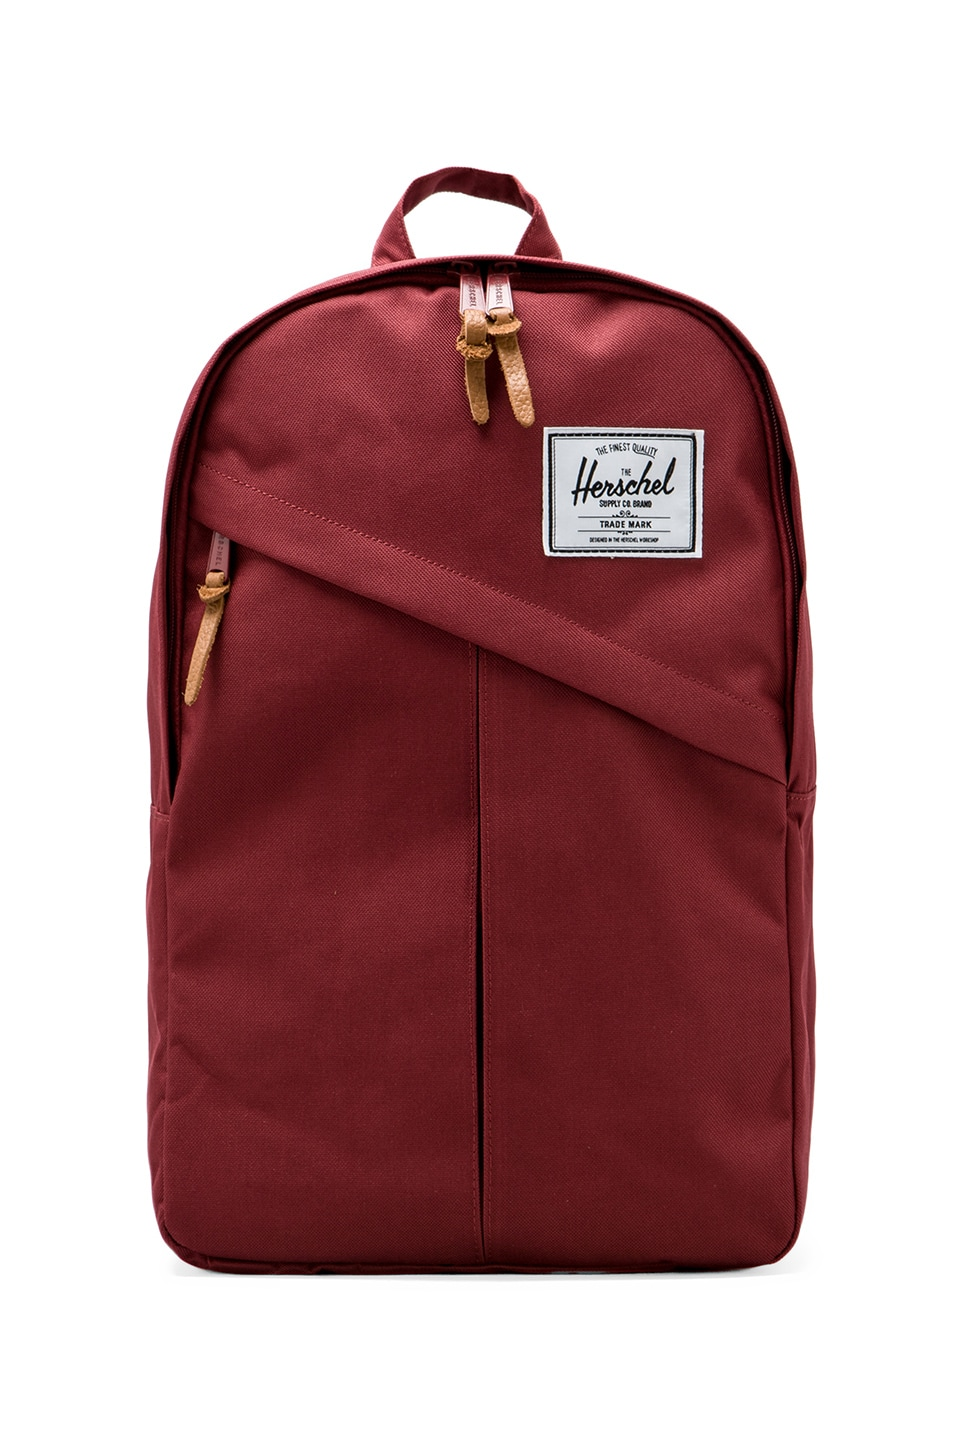 Herschel Supply Co. Parker Backpack in Burgundy